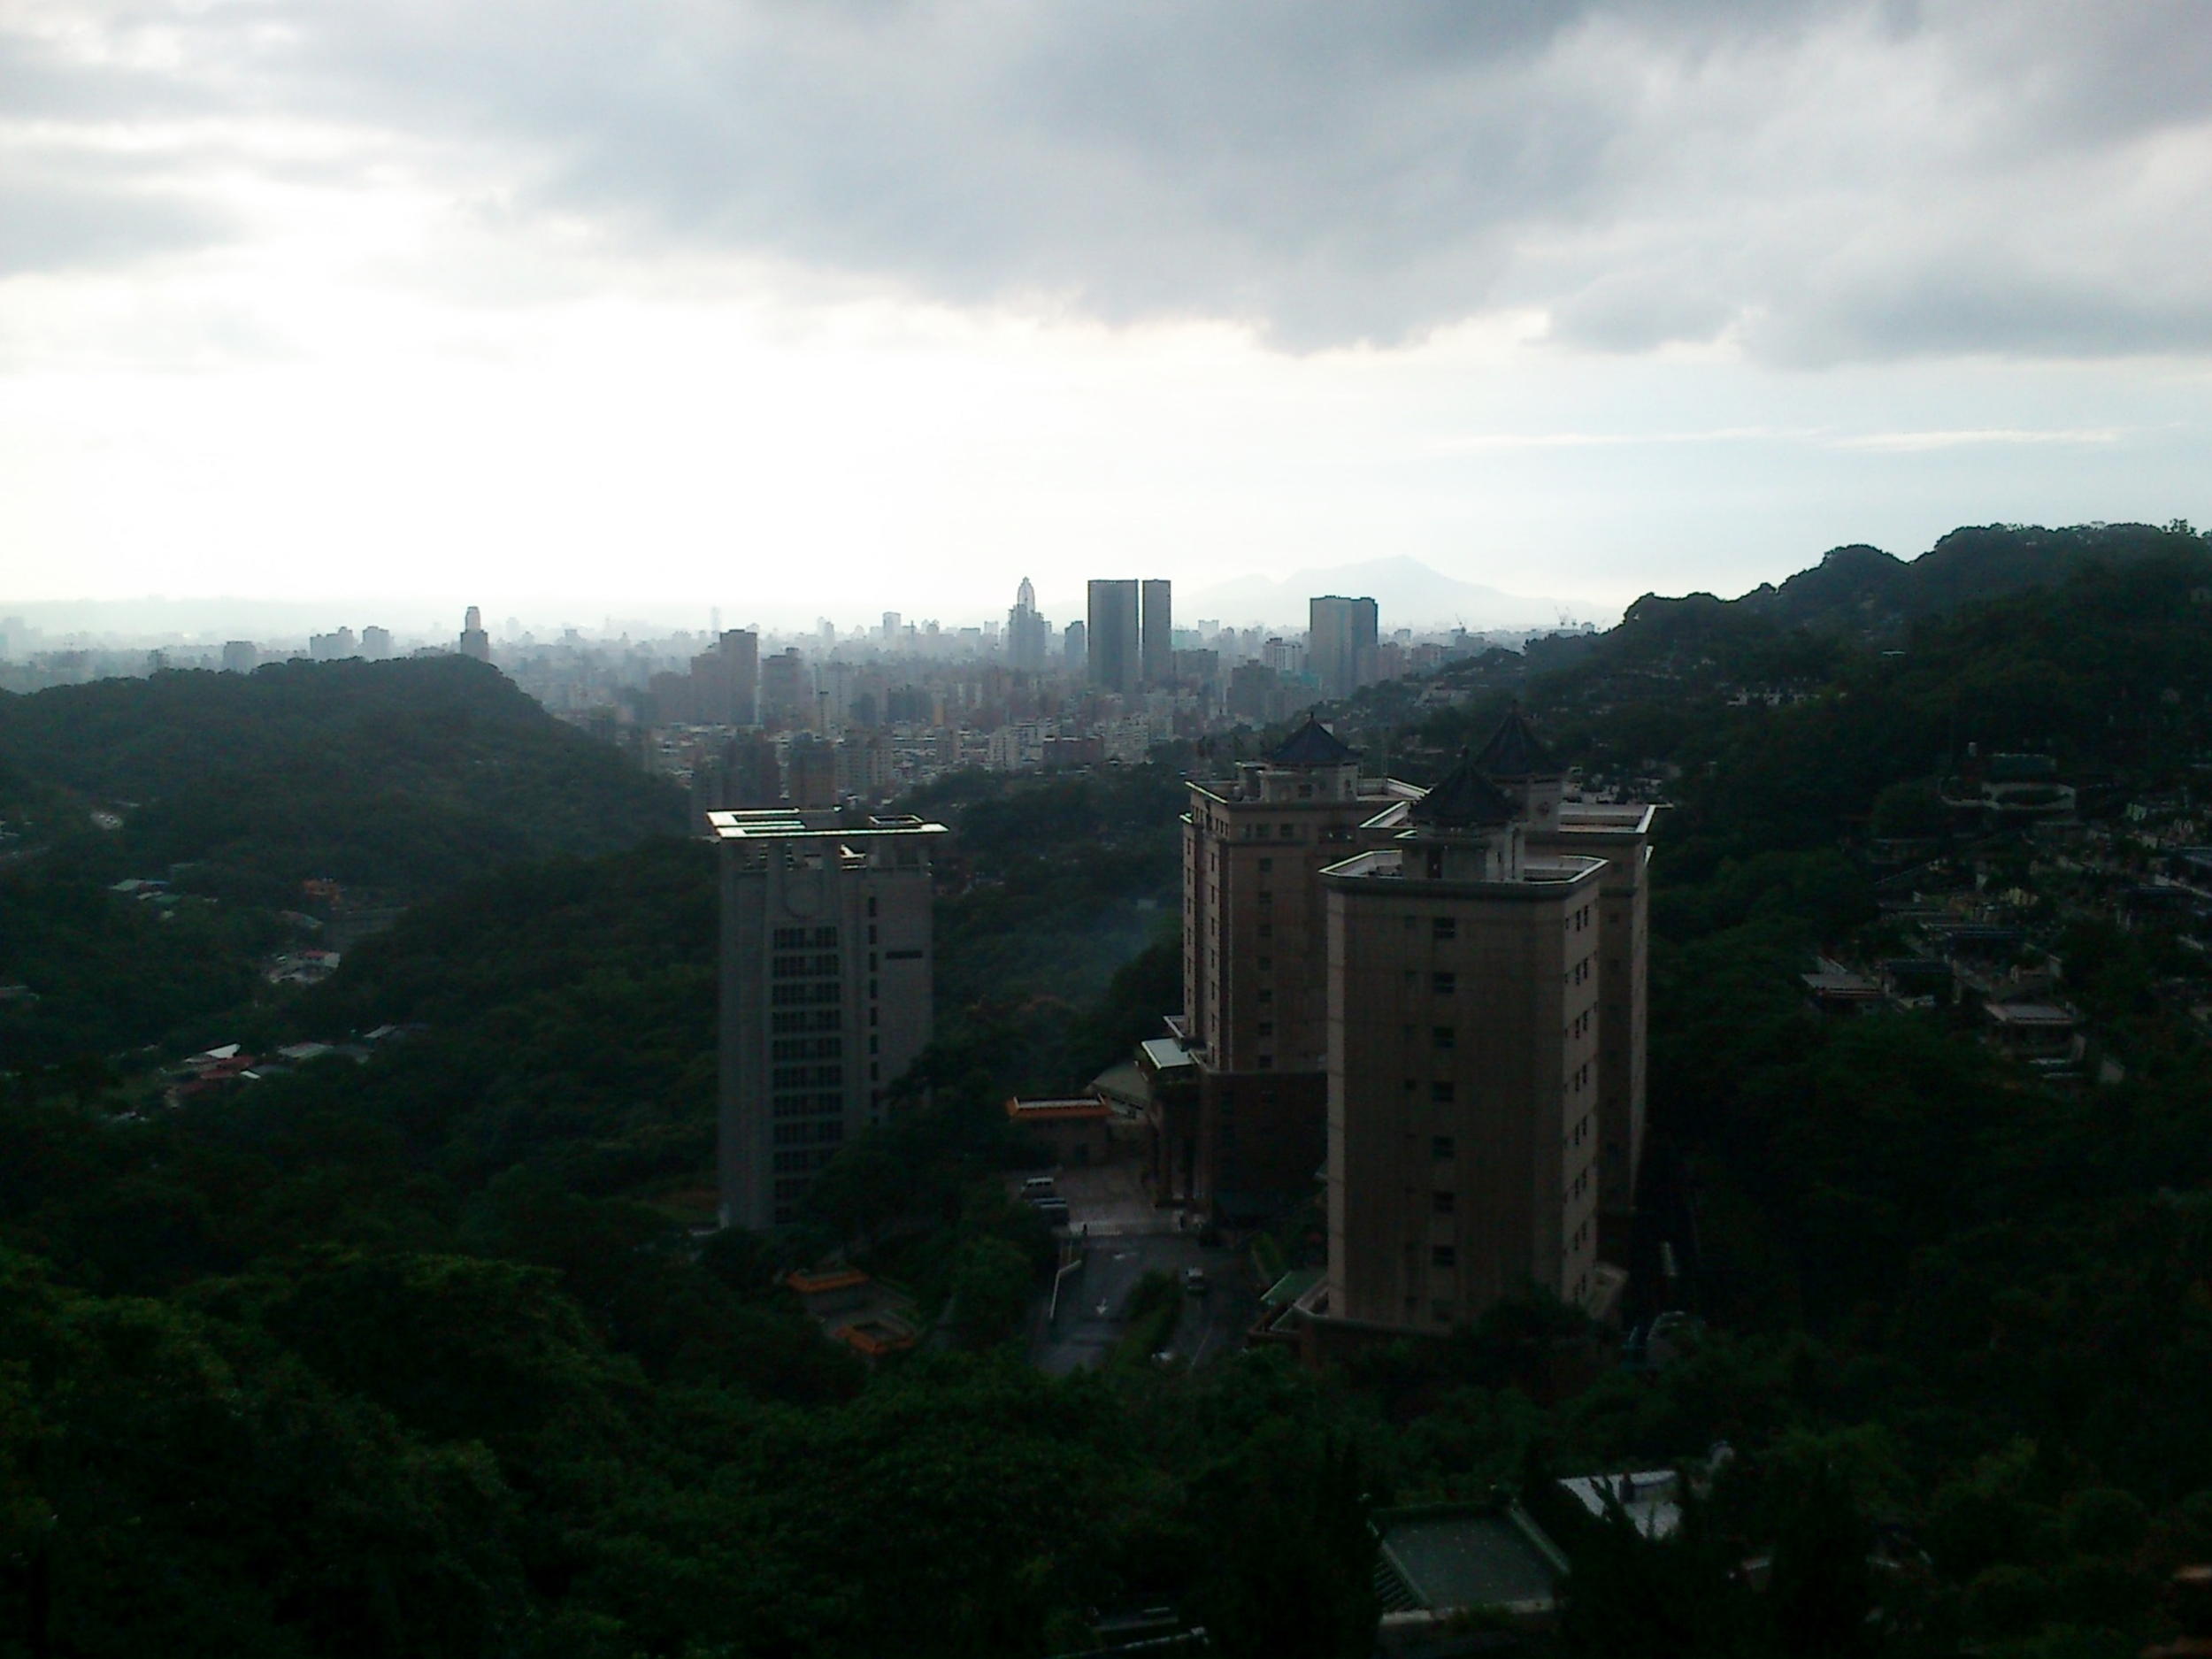 Looking back towards Taipei on a wet day.